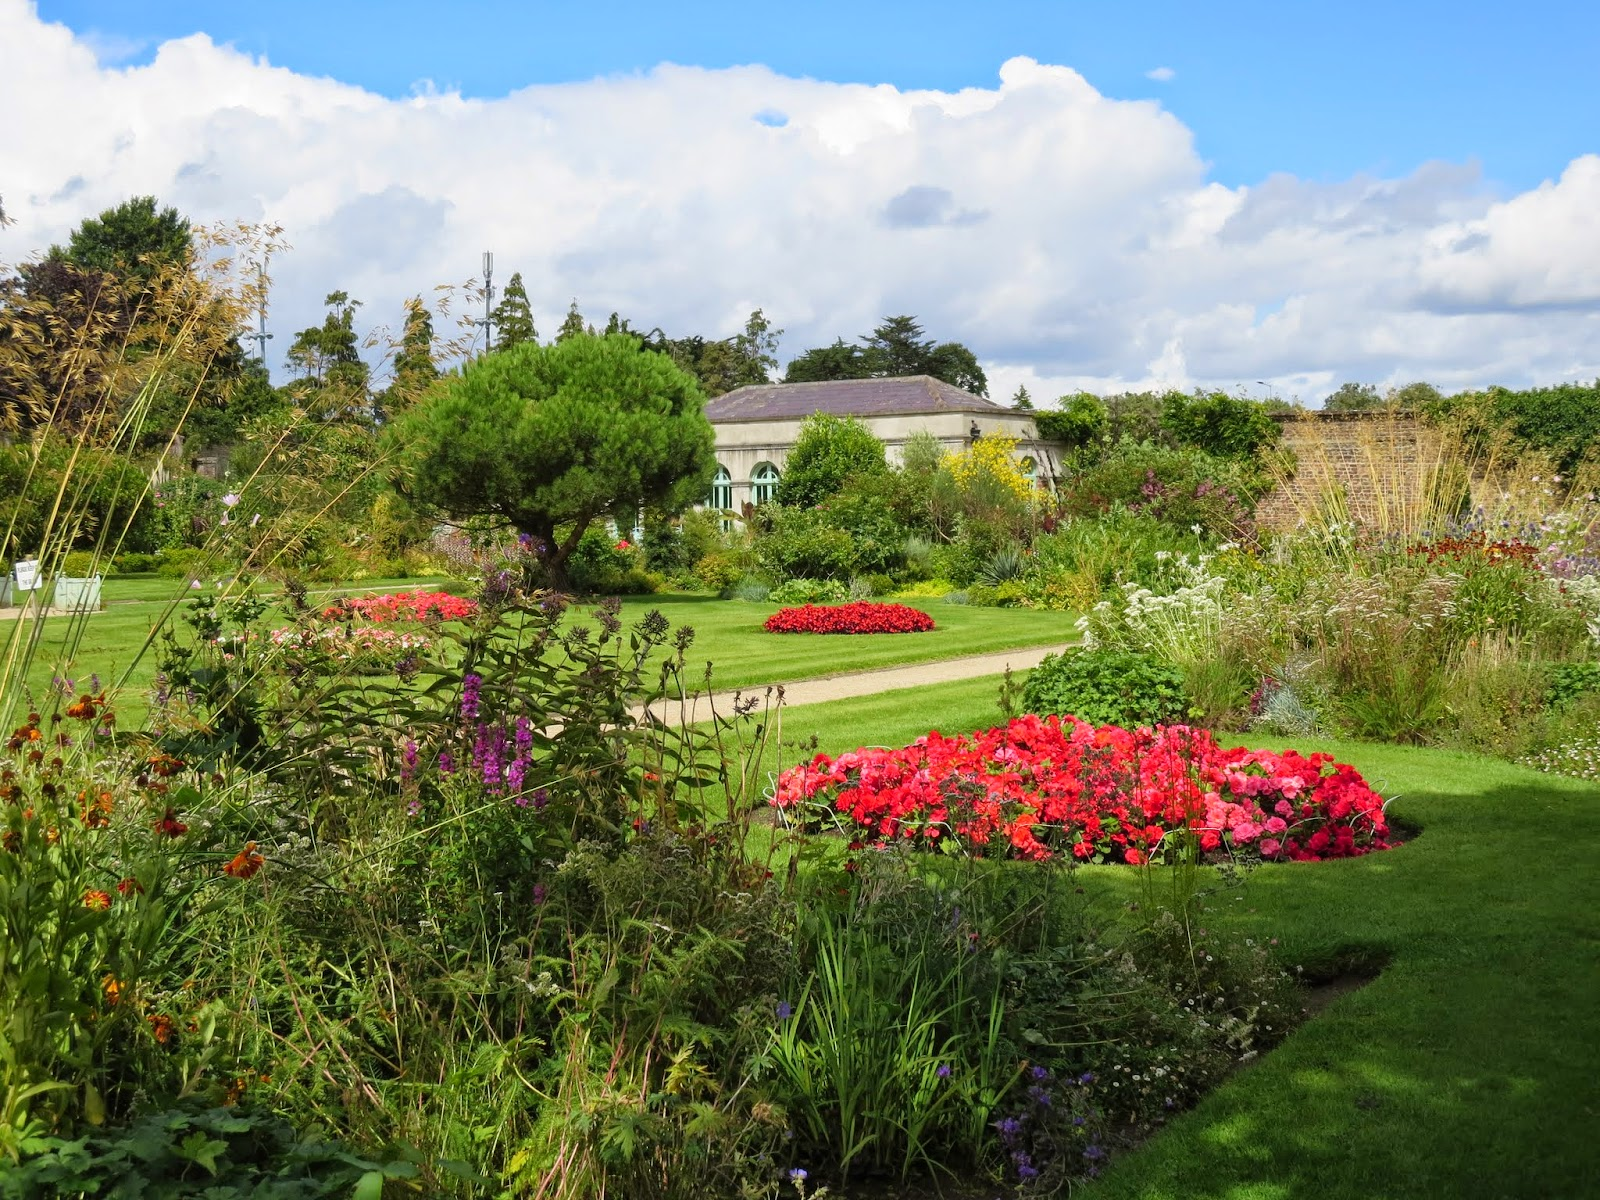 Regency Walled Garden at Marlay House